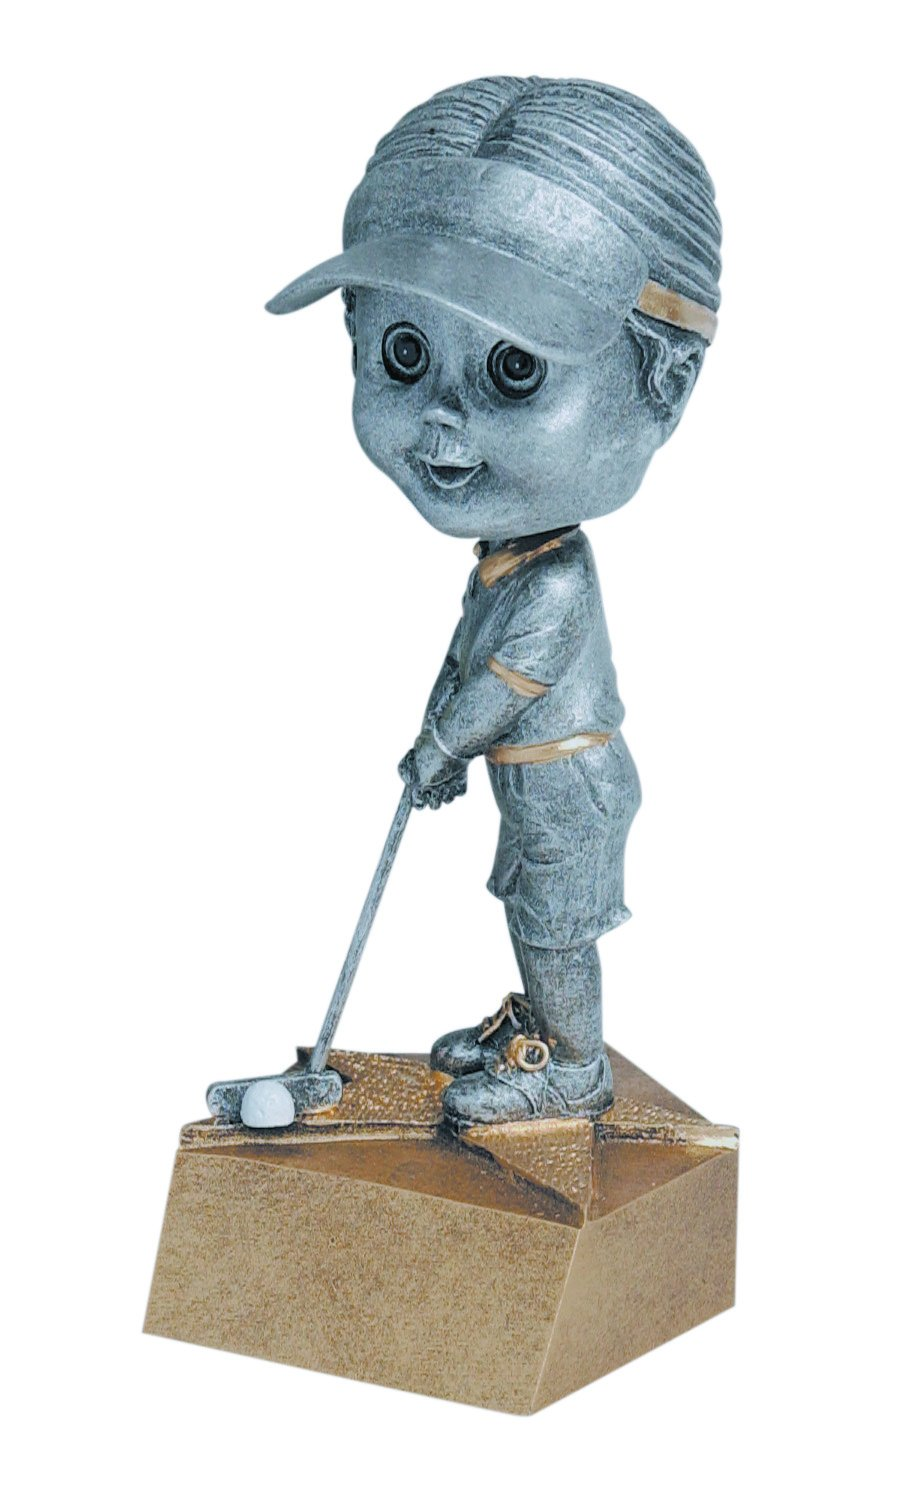 Female Golfer Bobblehead Trophy - Womens Golf Bobble Head Award - Engraved Plate Upon Request - Decade Awards